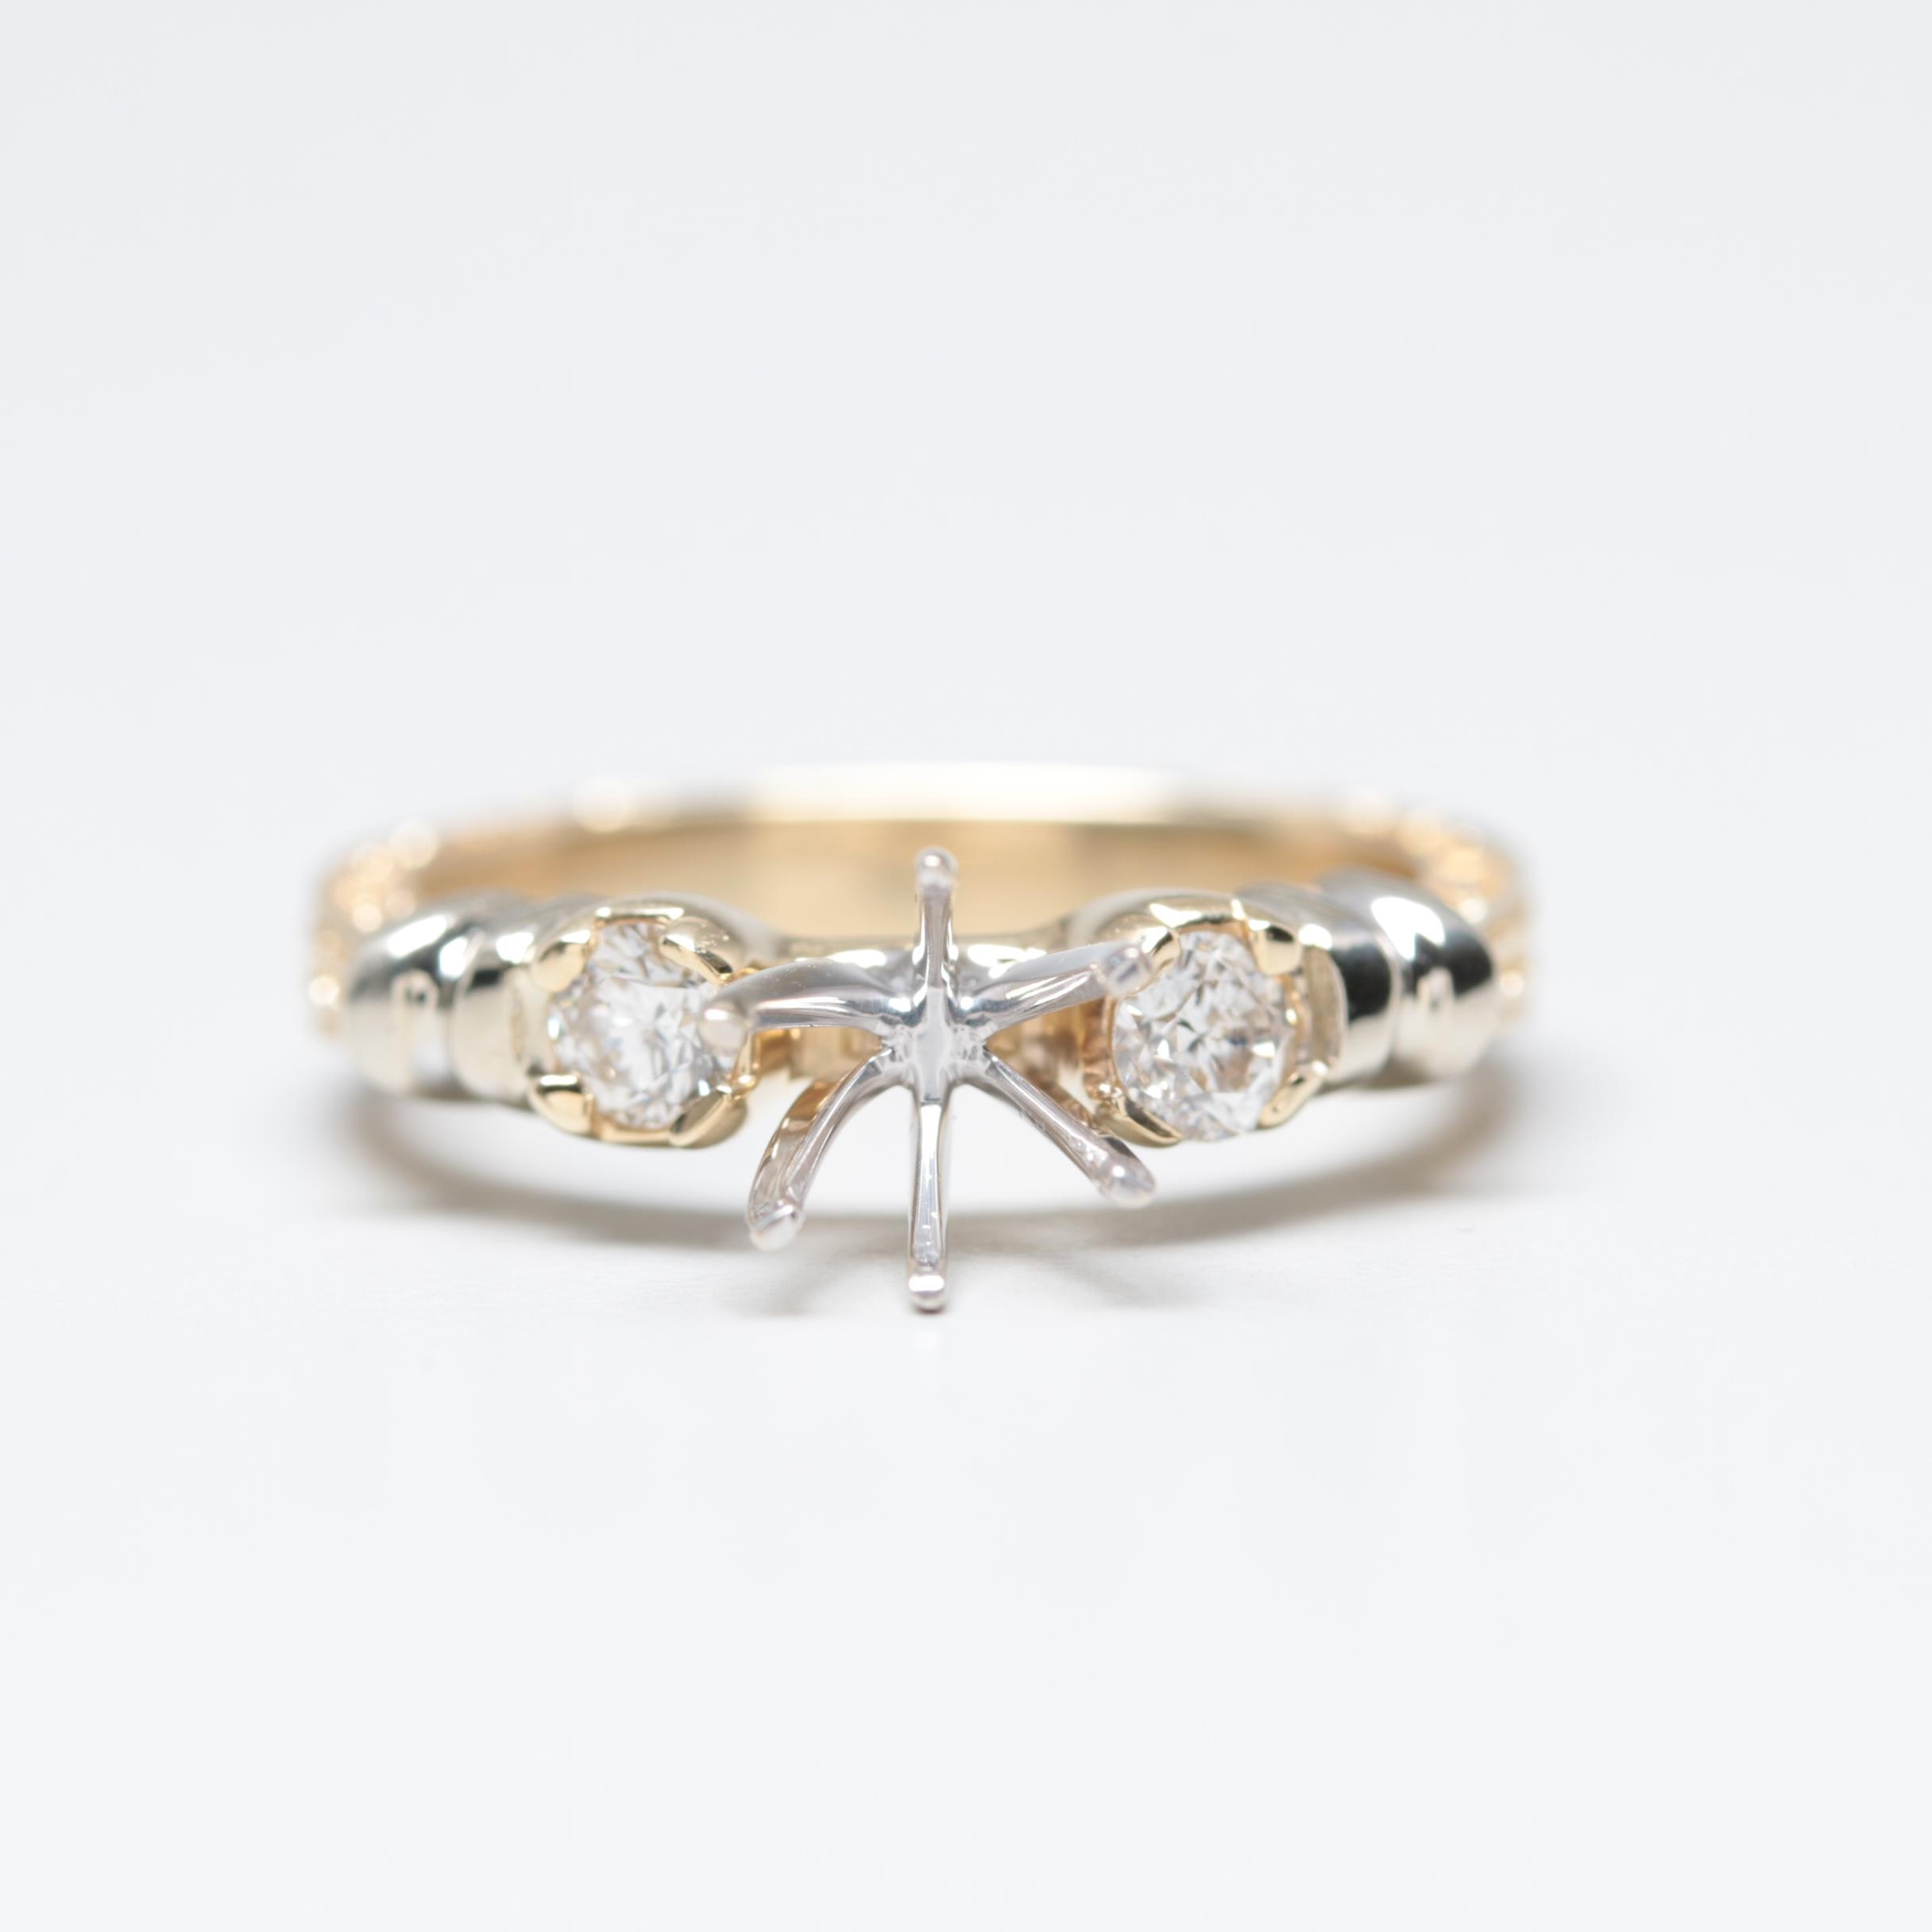 14K Yellow and White Gold Diamond Semi-Mount Ring